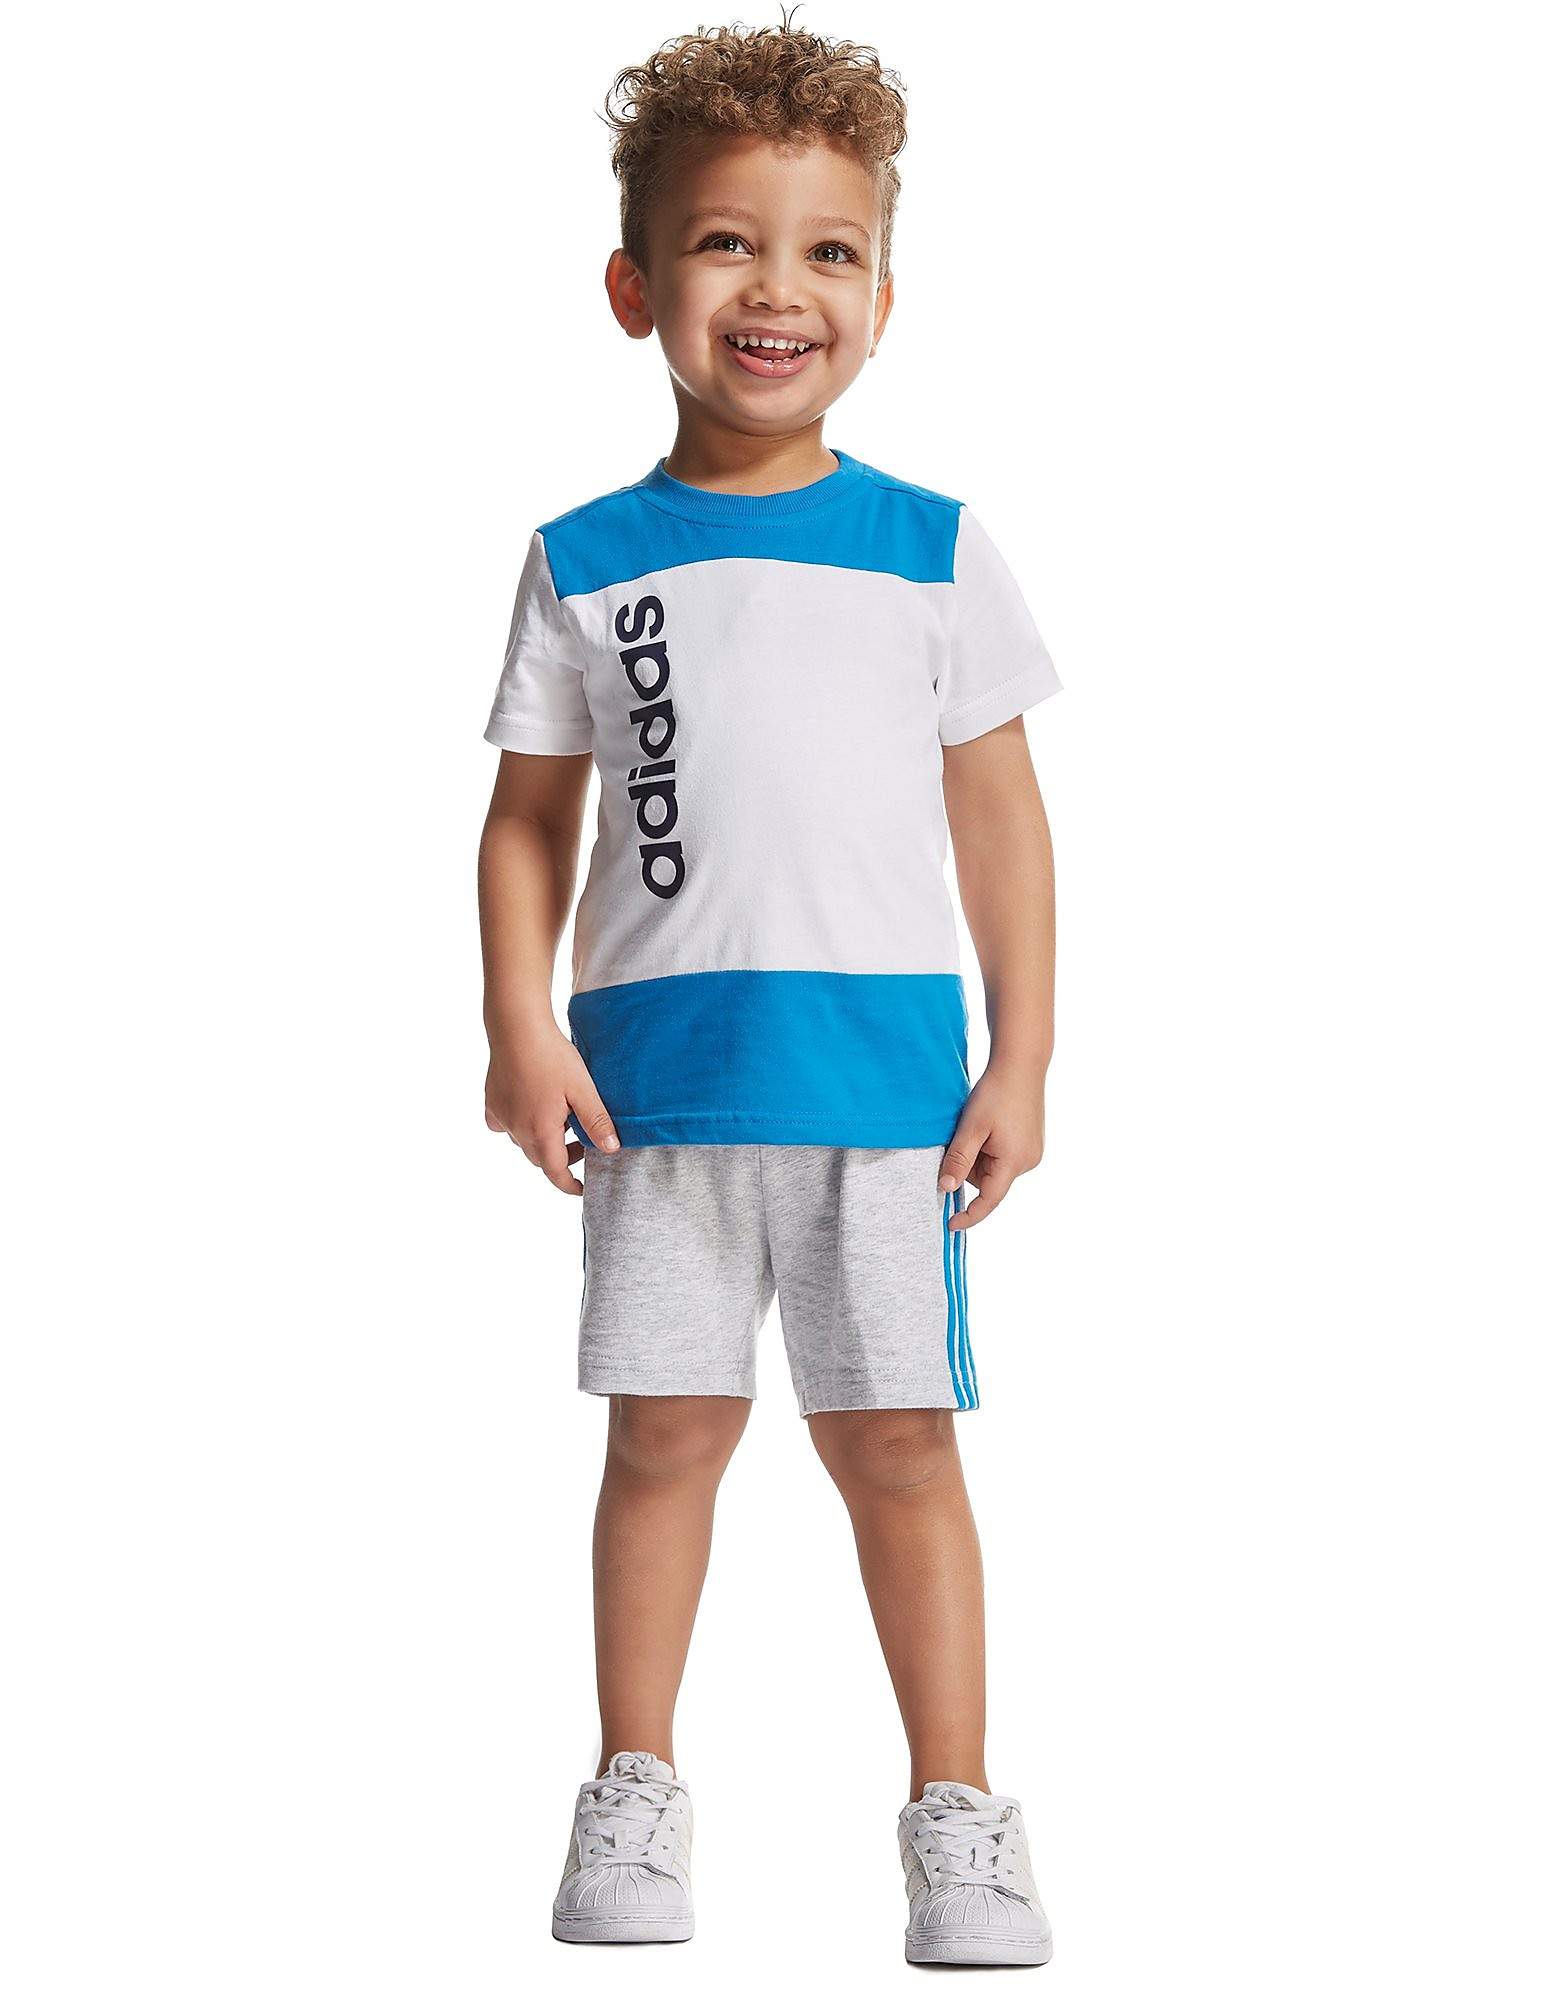 adidas Linear T-Shirt and Short Set Infant